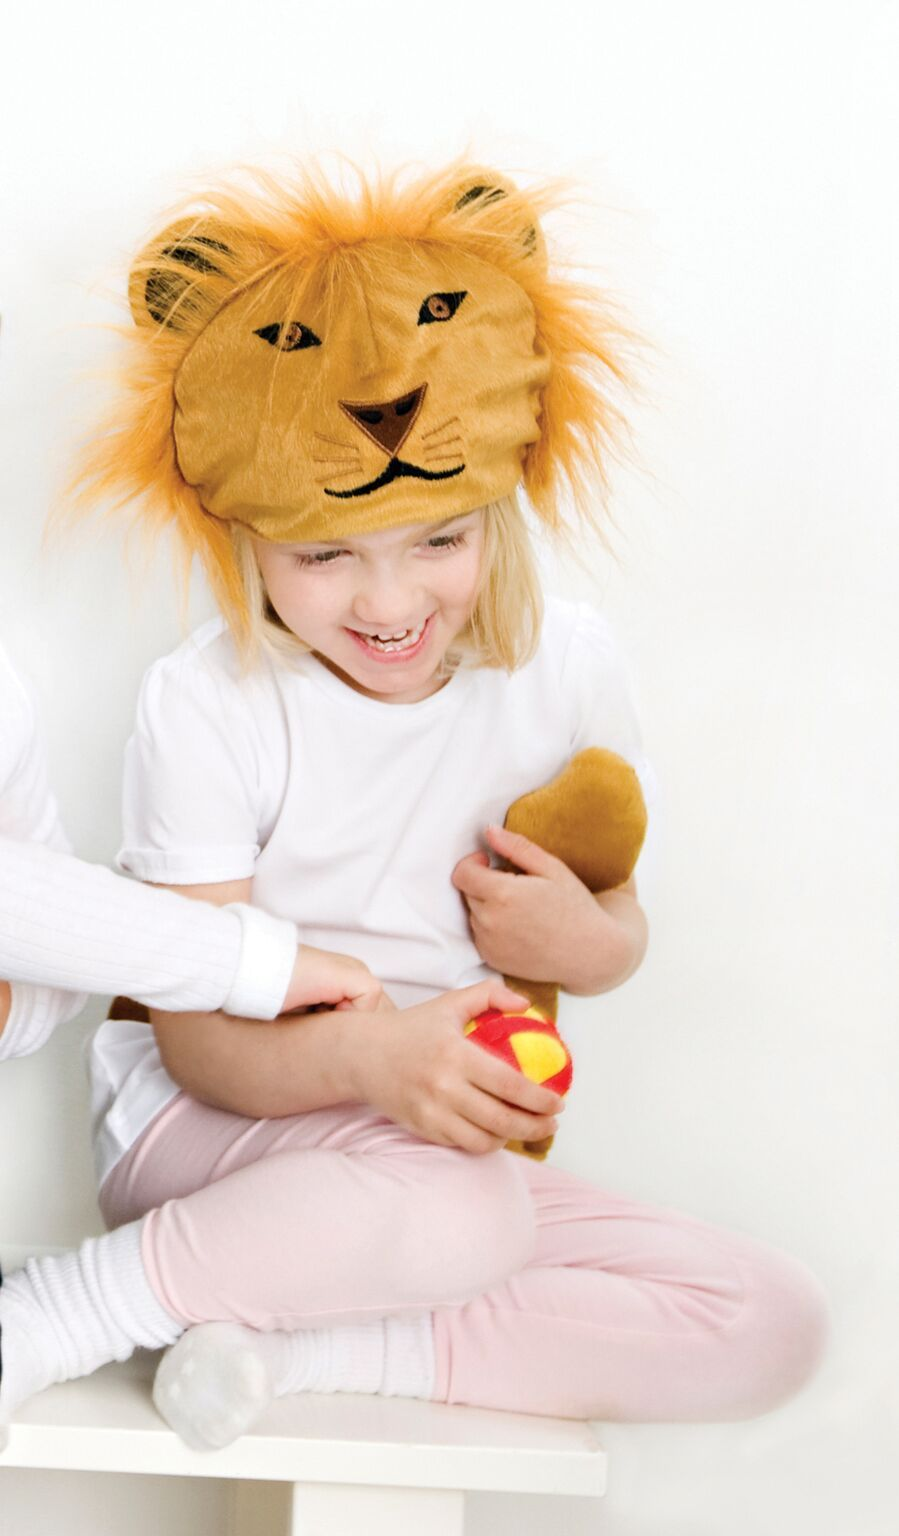 Adorable Lion Hat and Tail dress up set by Oskar and Ellen! Perfect for a party, school assembly or dressing up fun around the house.    For learning, imagination and role play! Oskar and Ellen provide an innovative and fun range of soft fabric toys aimed at encouraging your child's imagination through role play!  #kidscostumes #imaginativeplay #educationaltoys #handmade #oskaandellen #giftsforkids #onlineshopping #littlebooteek